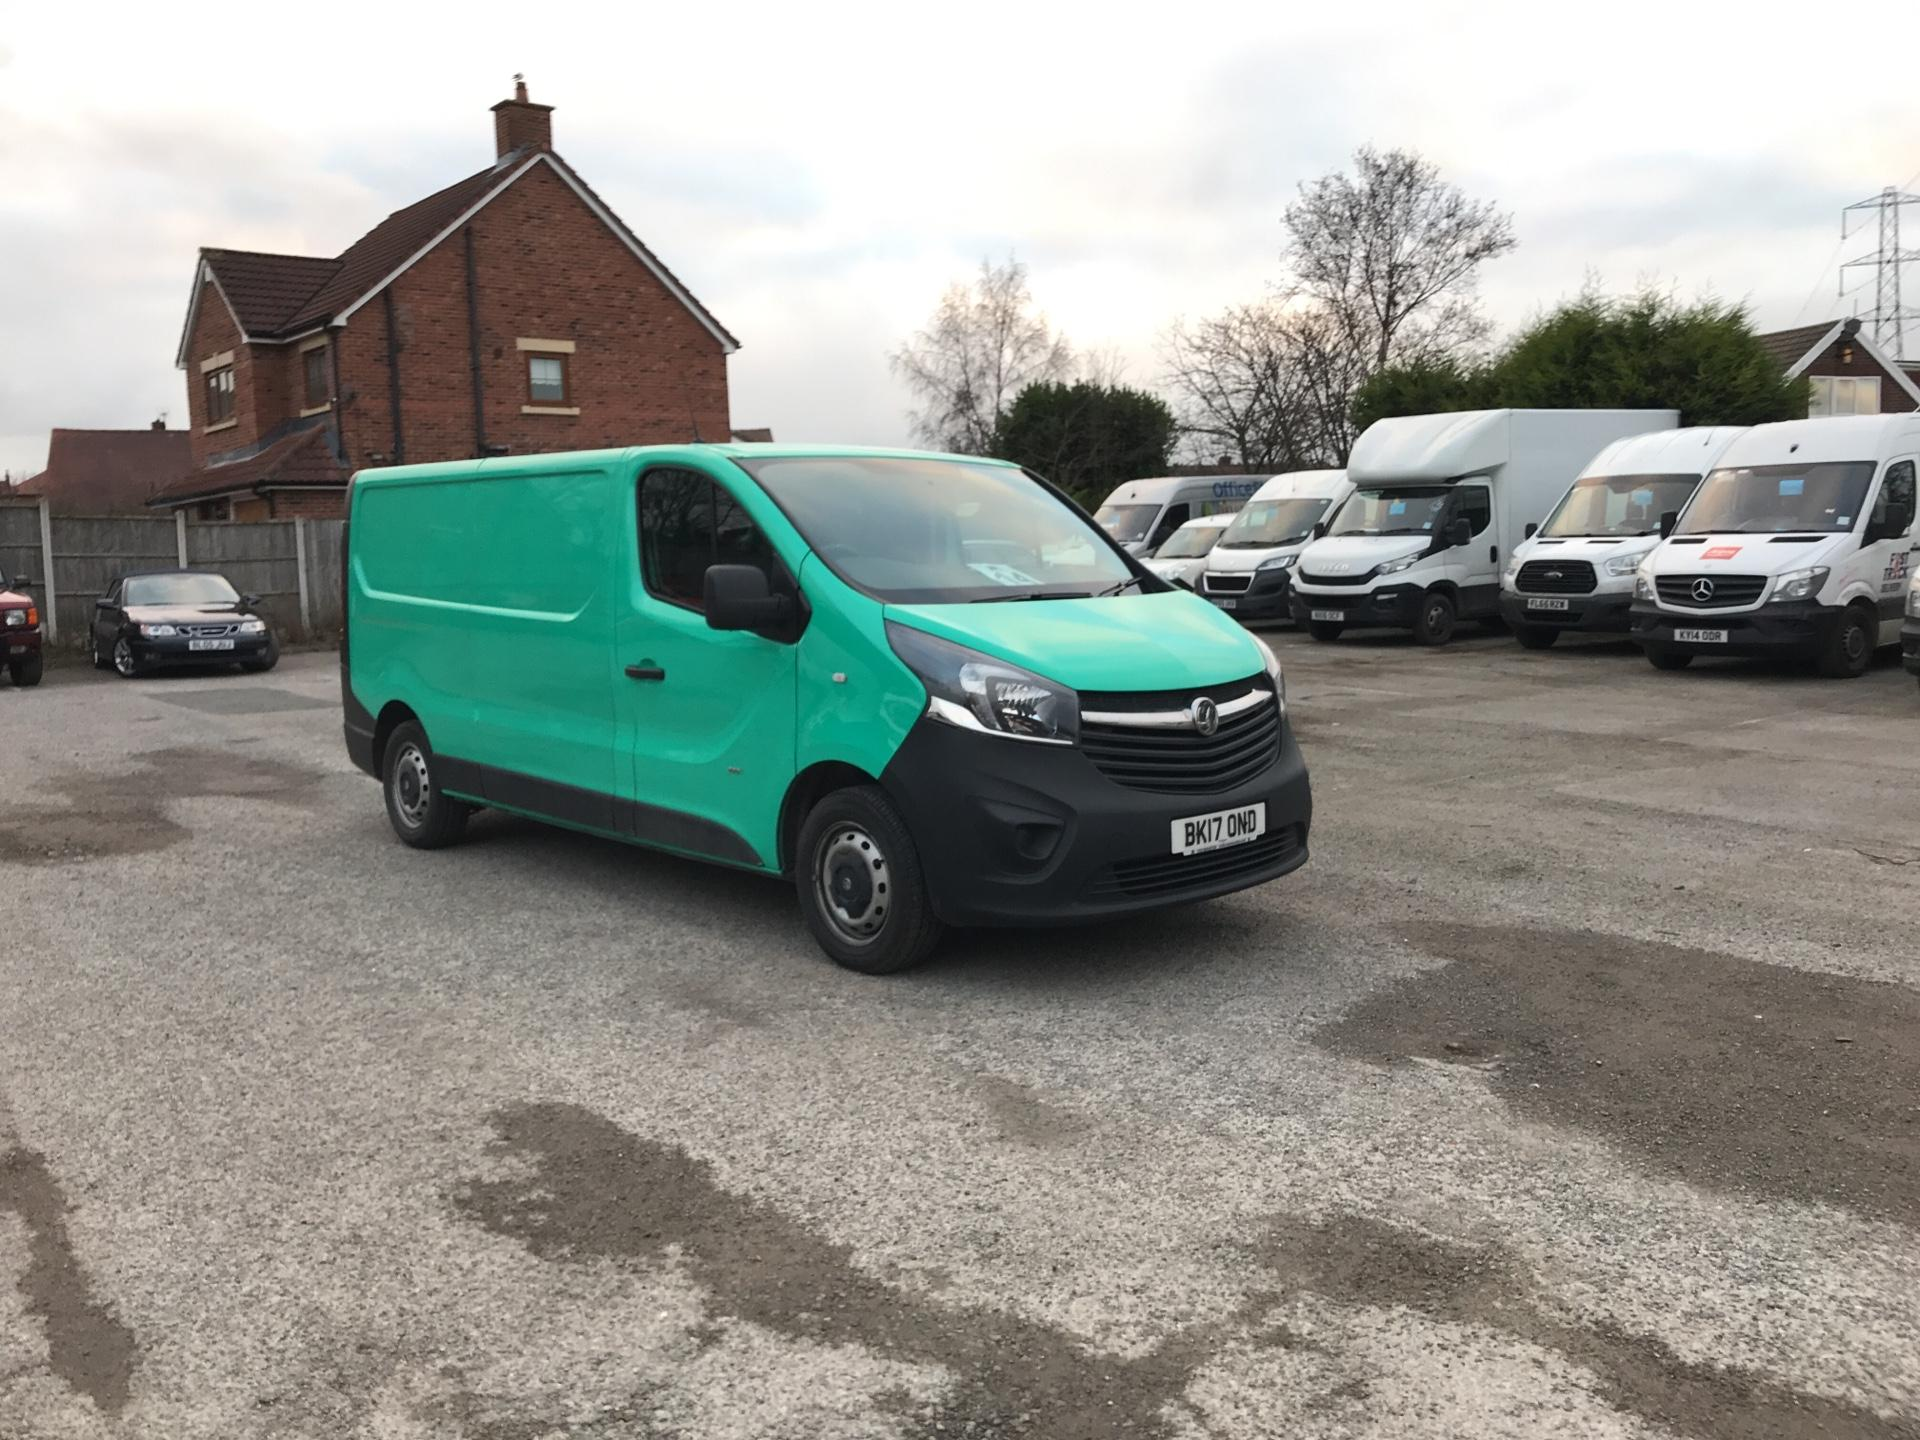 2017 Vauxhall Vivaro L2 H1 2900 1.6CDTI 95PS EURO 6 *VALUE RANGE VEHICLE CONDITION REFLECTED IN PRICE* (BK17OND)